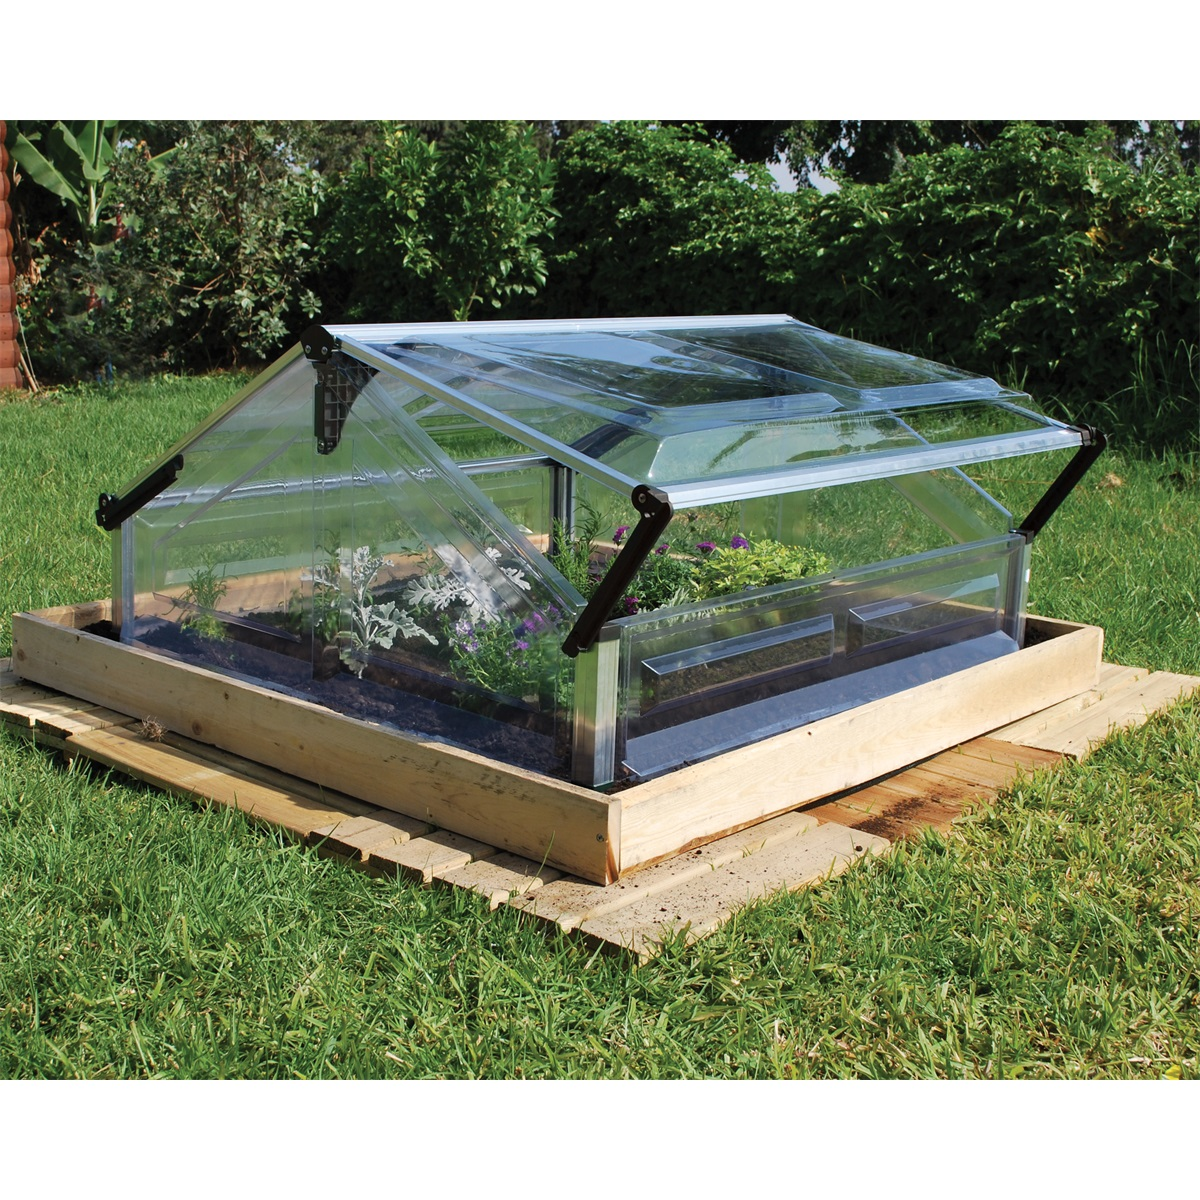 Palram COLD FRAME Double deluxe